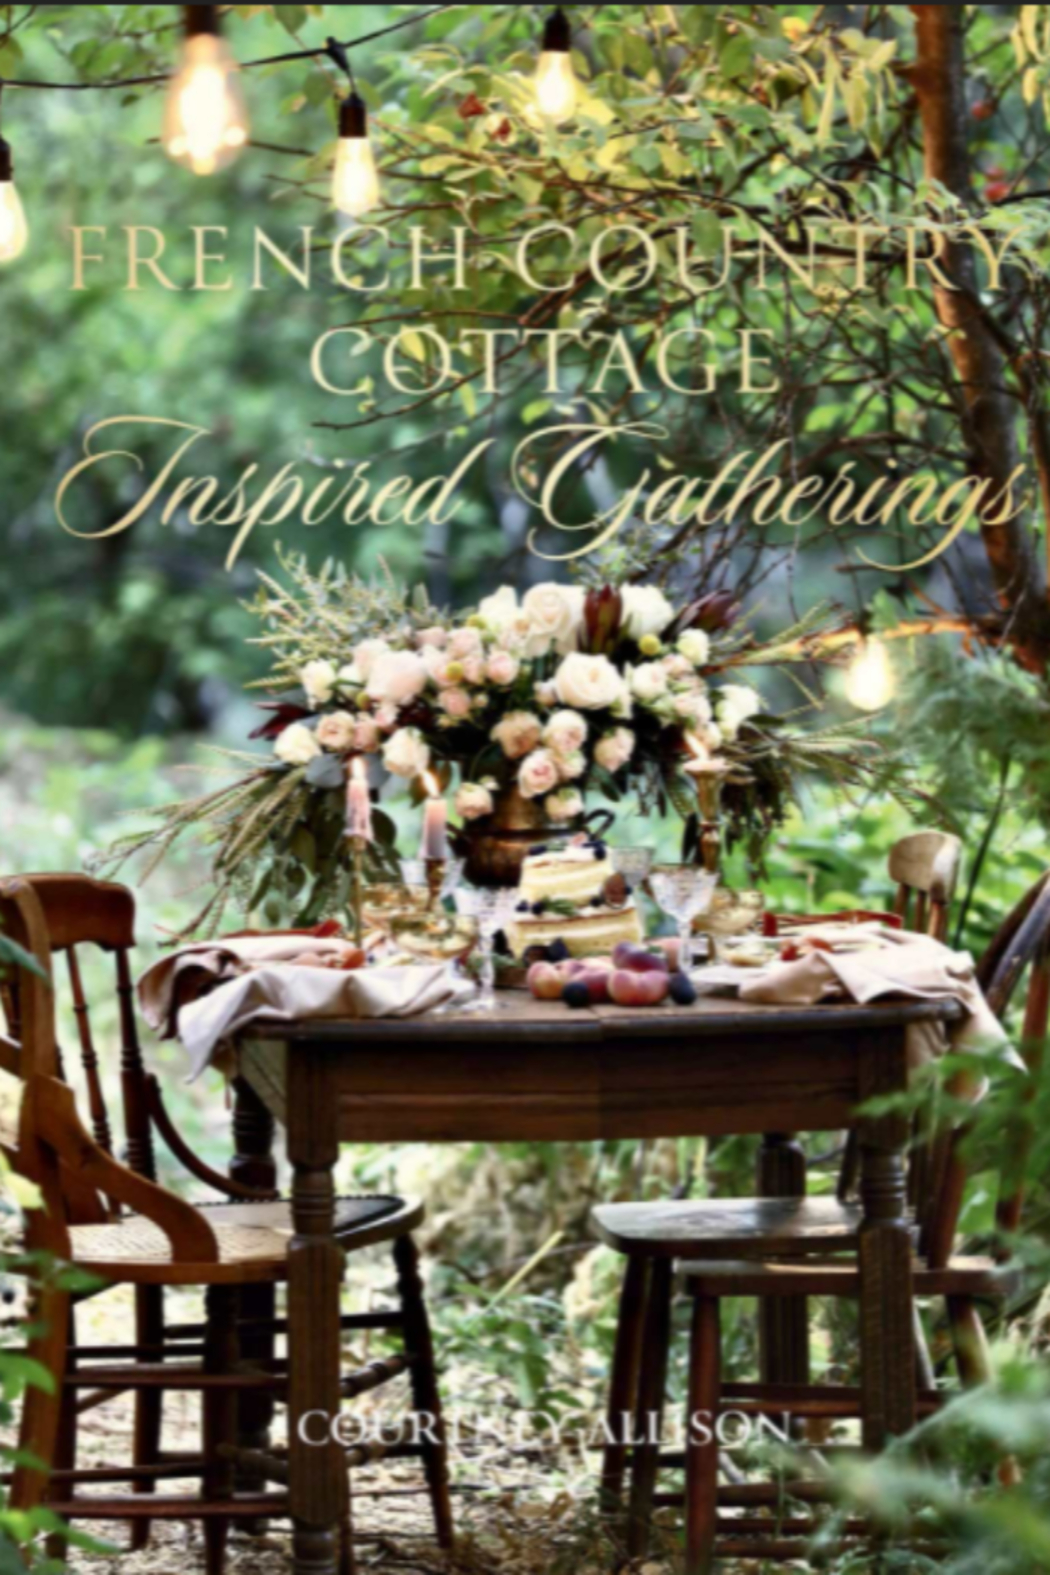 Gibbs-Smith French Country Cottage Inspired Gatherings - Main Image